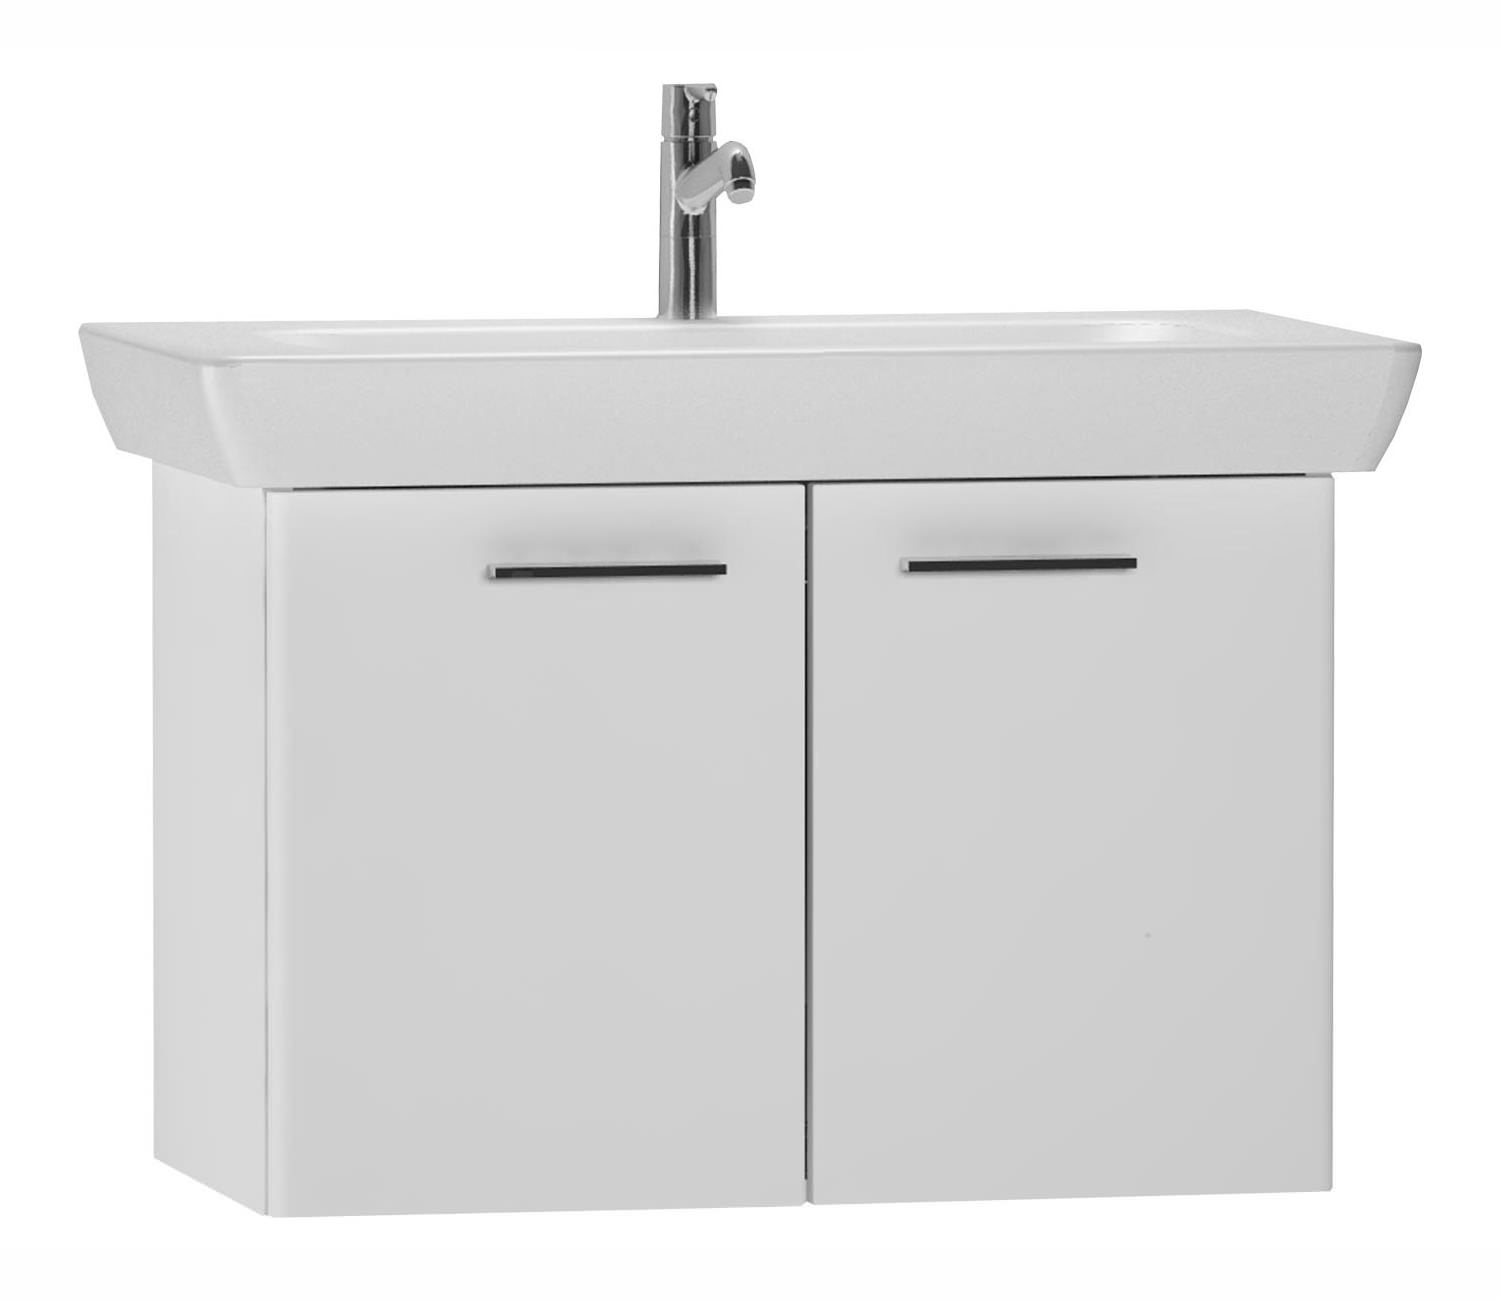 Arizona 600mm wall hung black gloss basin vanity unit side cabinet - Vitra S20 High Gloss White Finished 65cm Vanity Unit And Basin